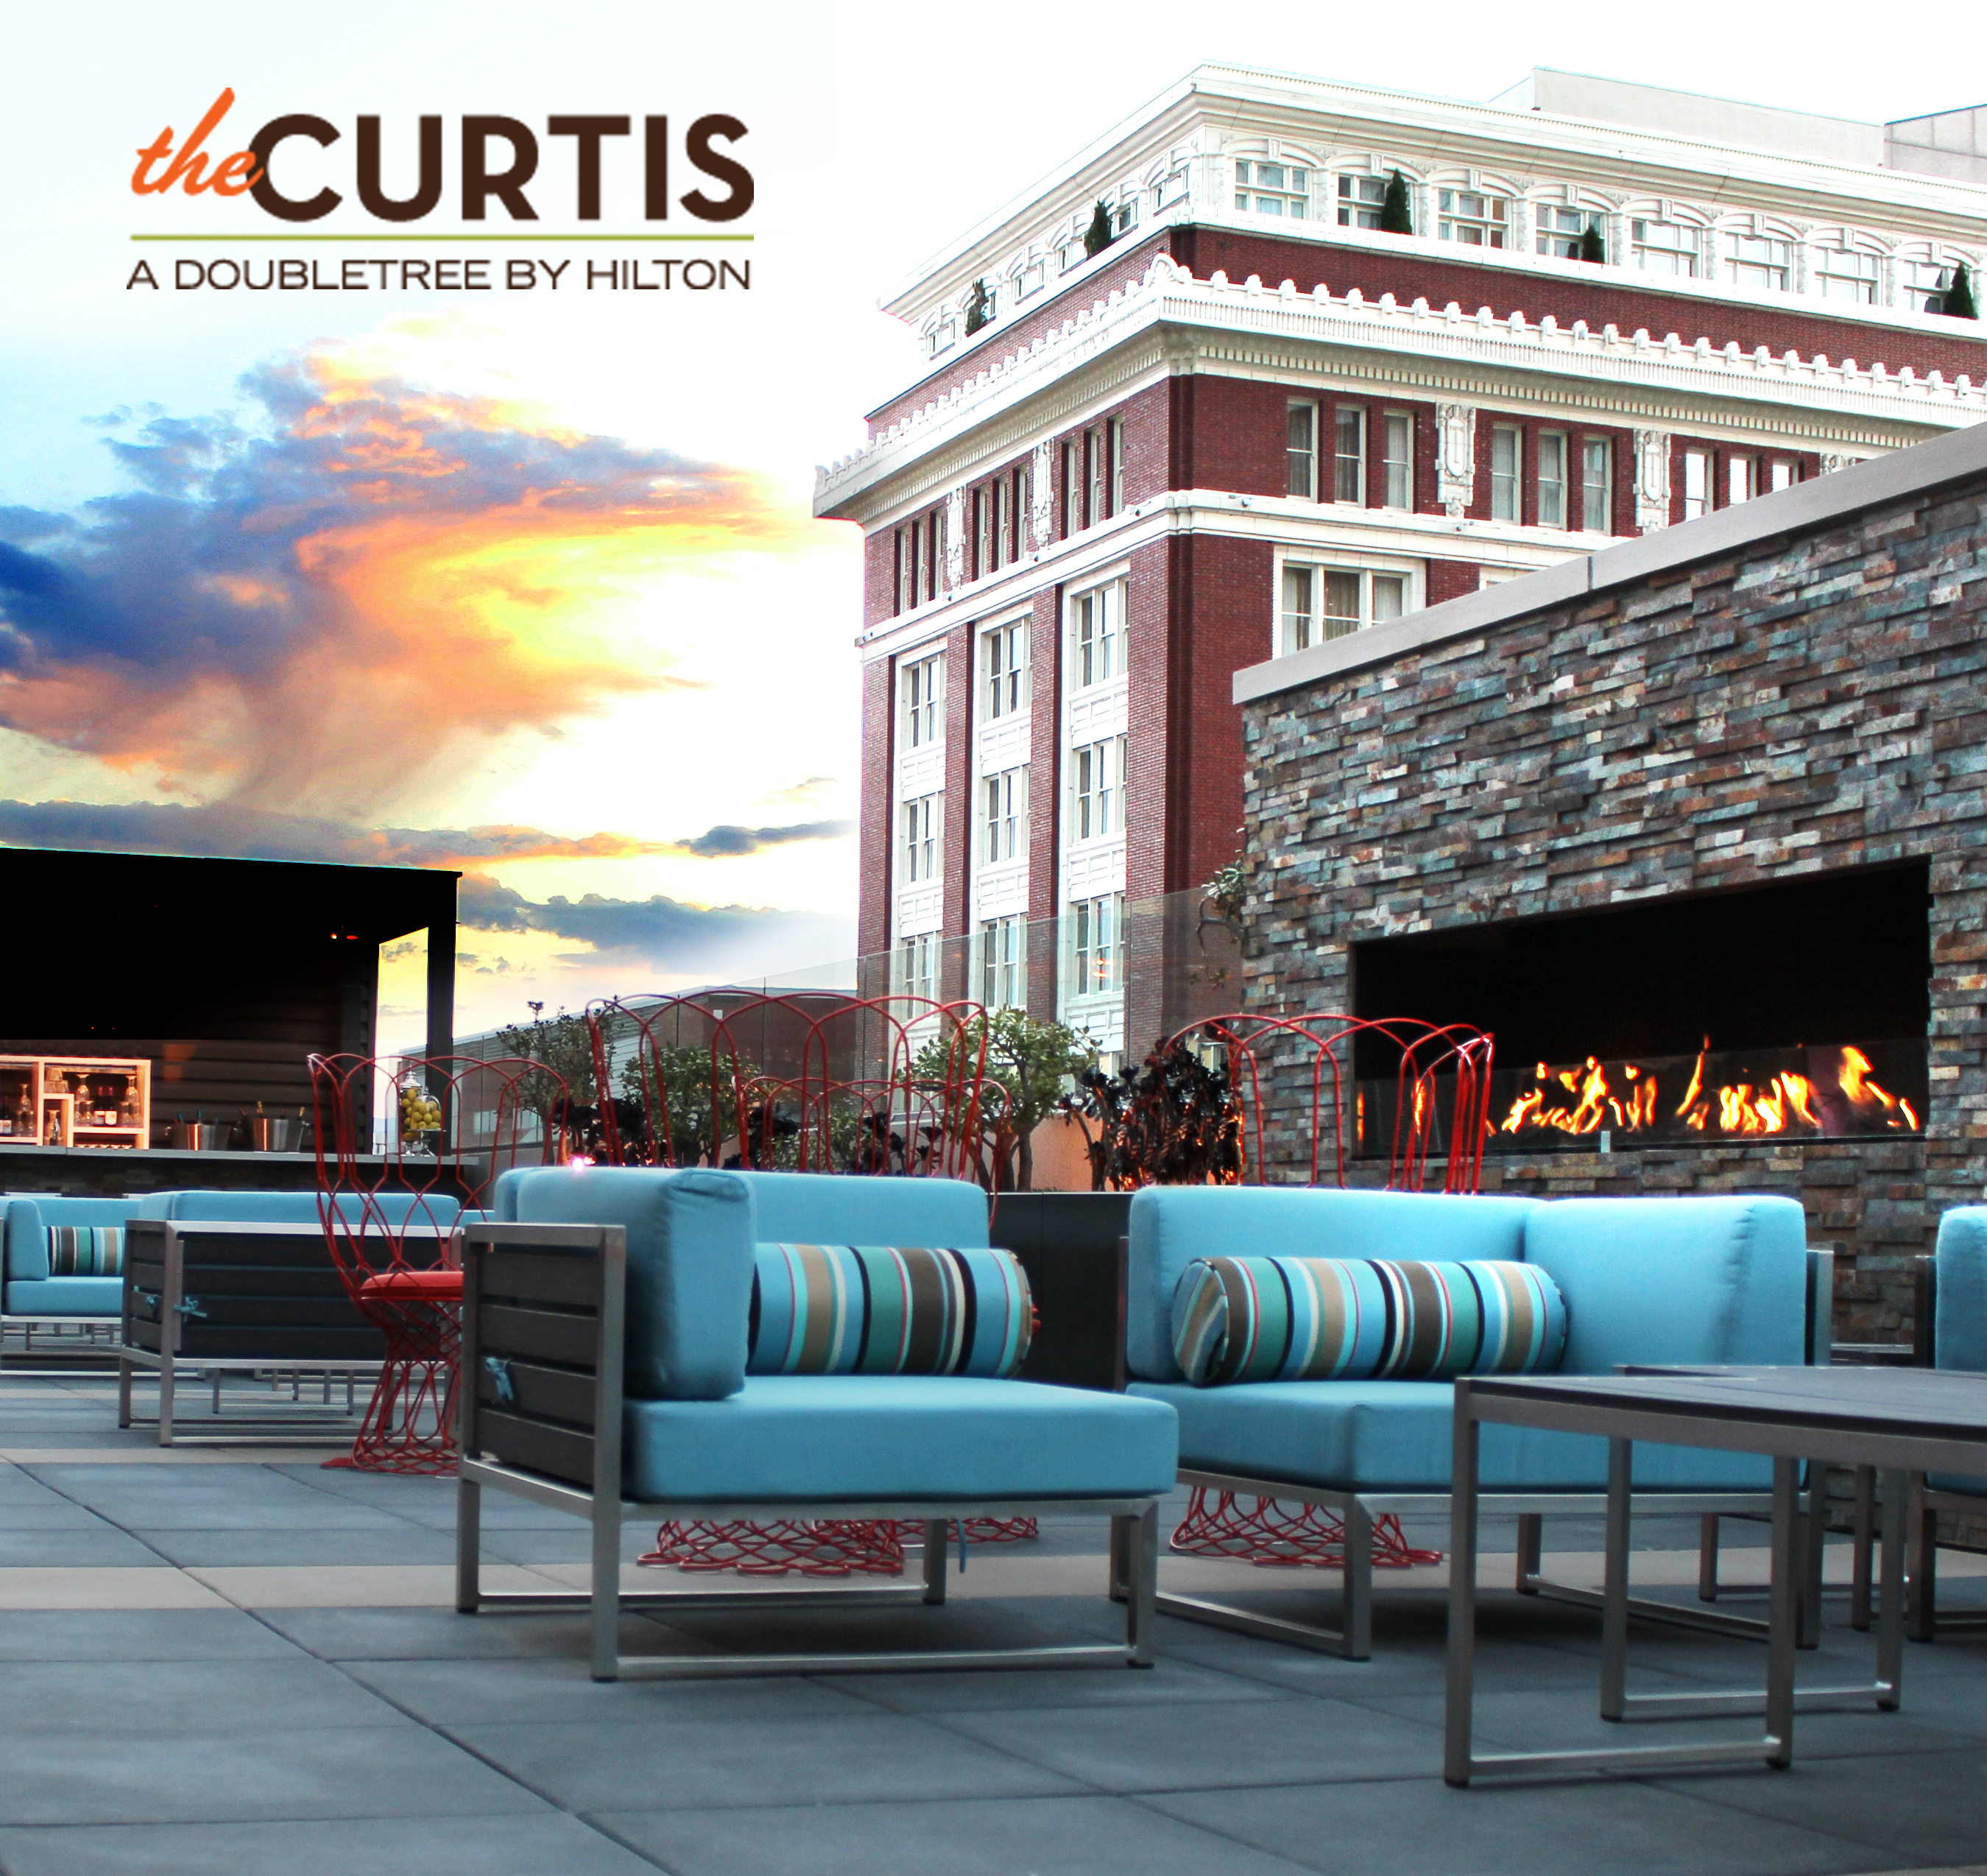 Four Square Ballroom event space at theCURTIS -a Doubletree by Hilton in denver